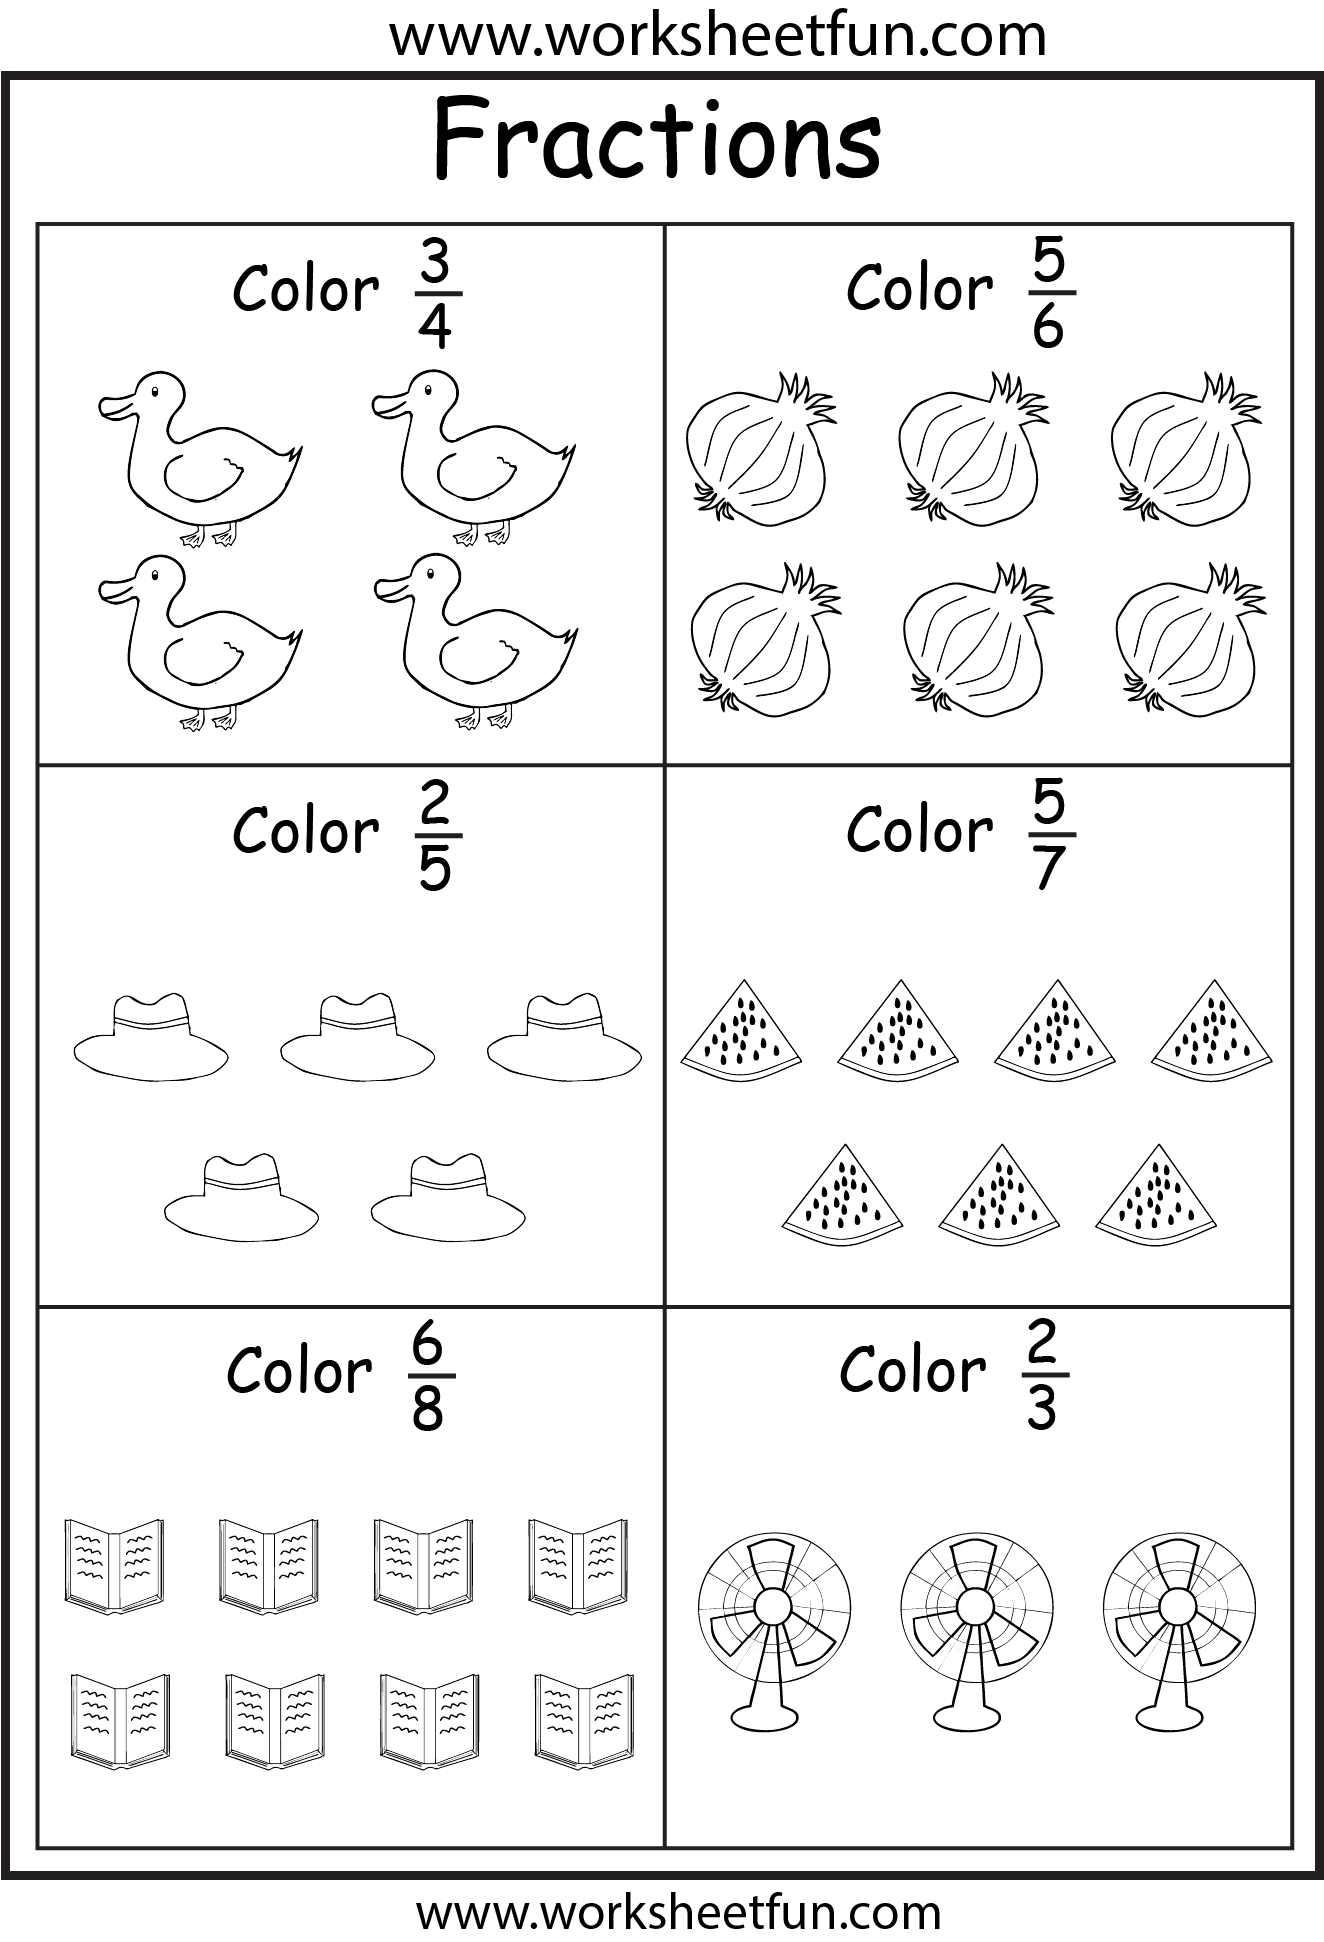 Coloring Fractions 5 Worksheets Free Printable